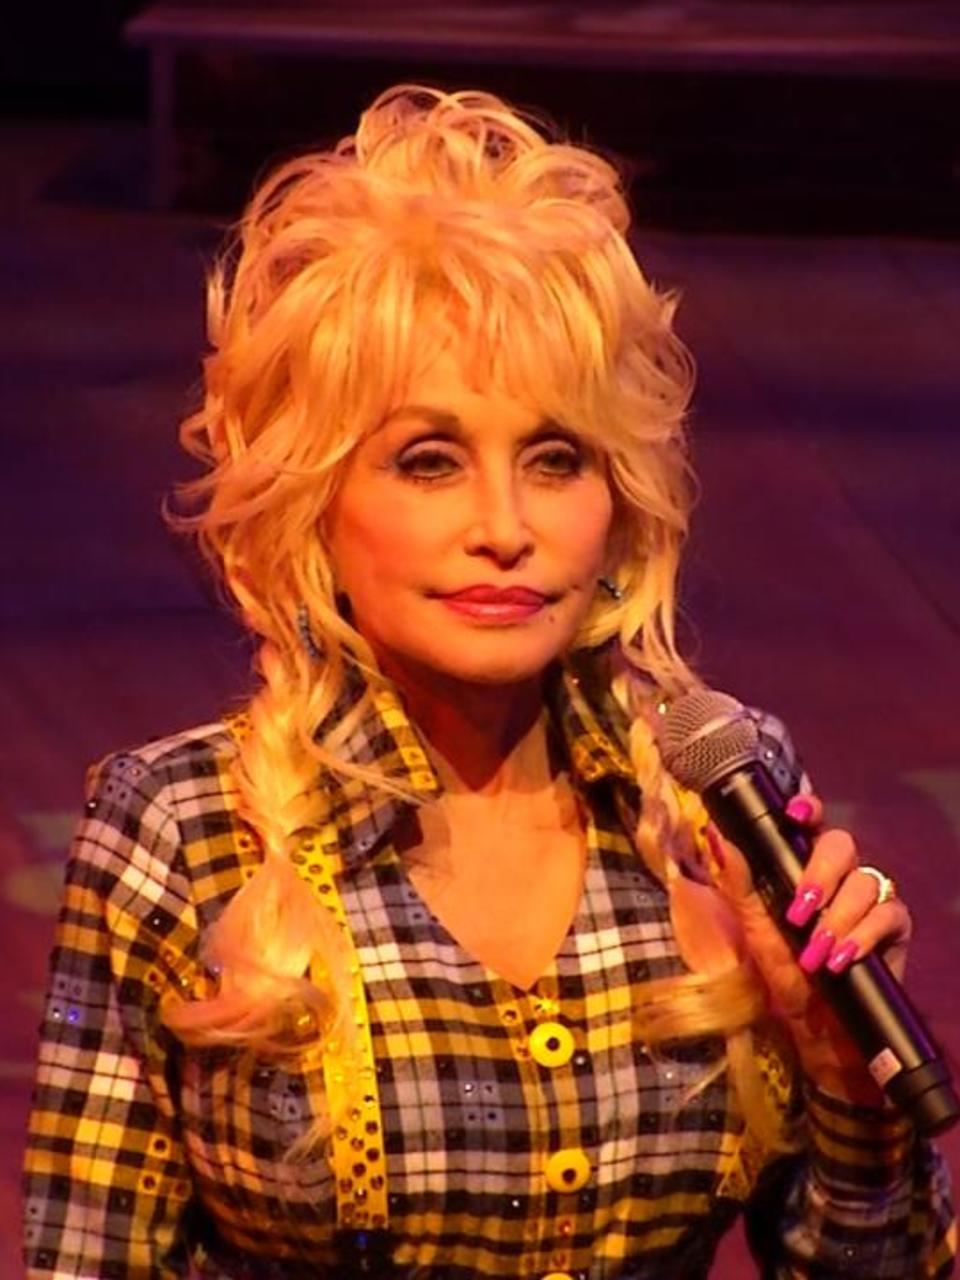 Brother Of Dolly Parton Dies In Tennessee Wlos